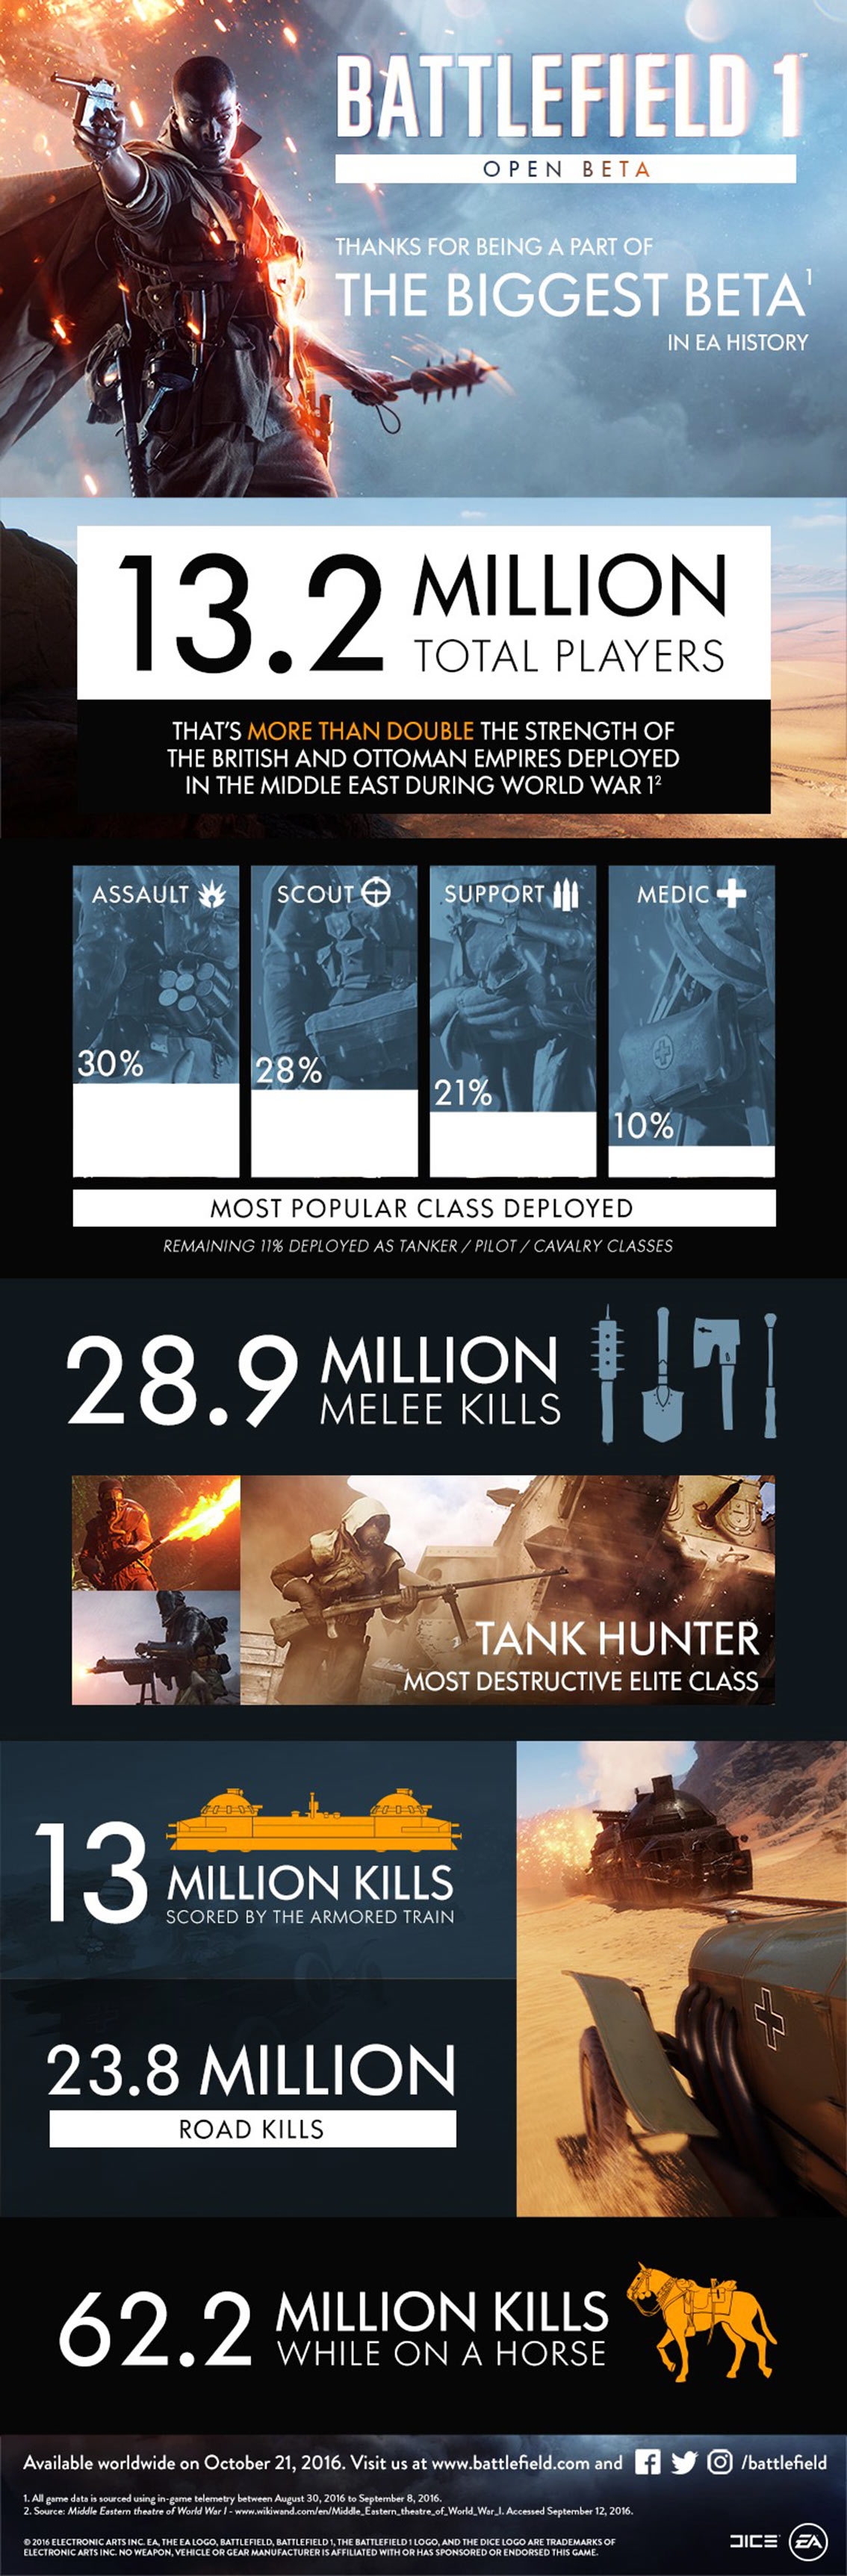 Battlefield 1 Open Beta - Video Game Infographic